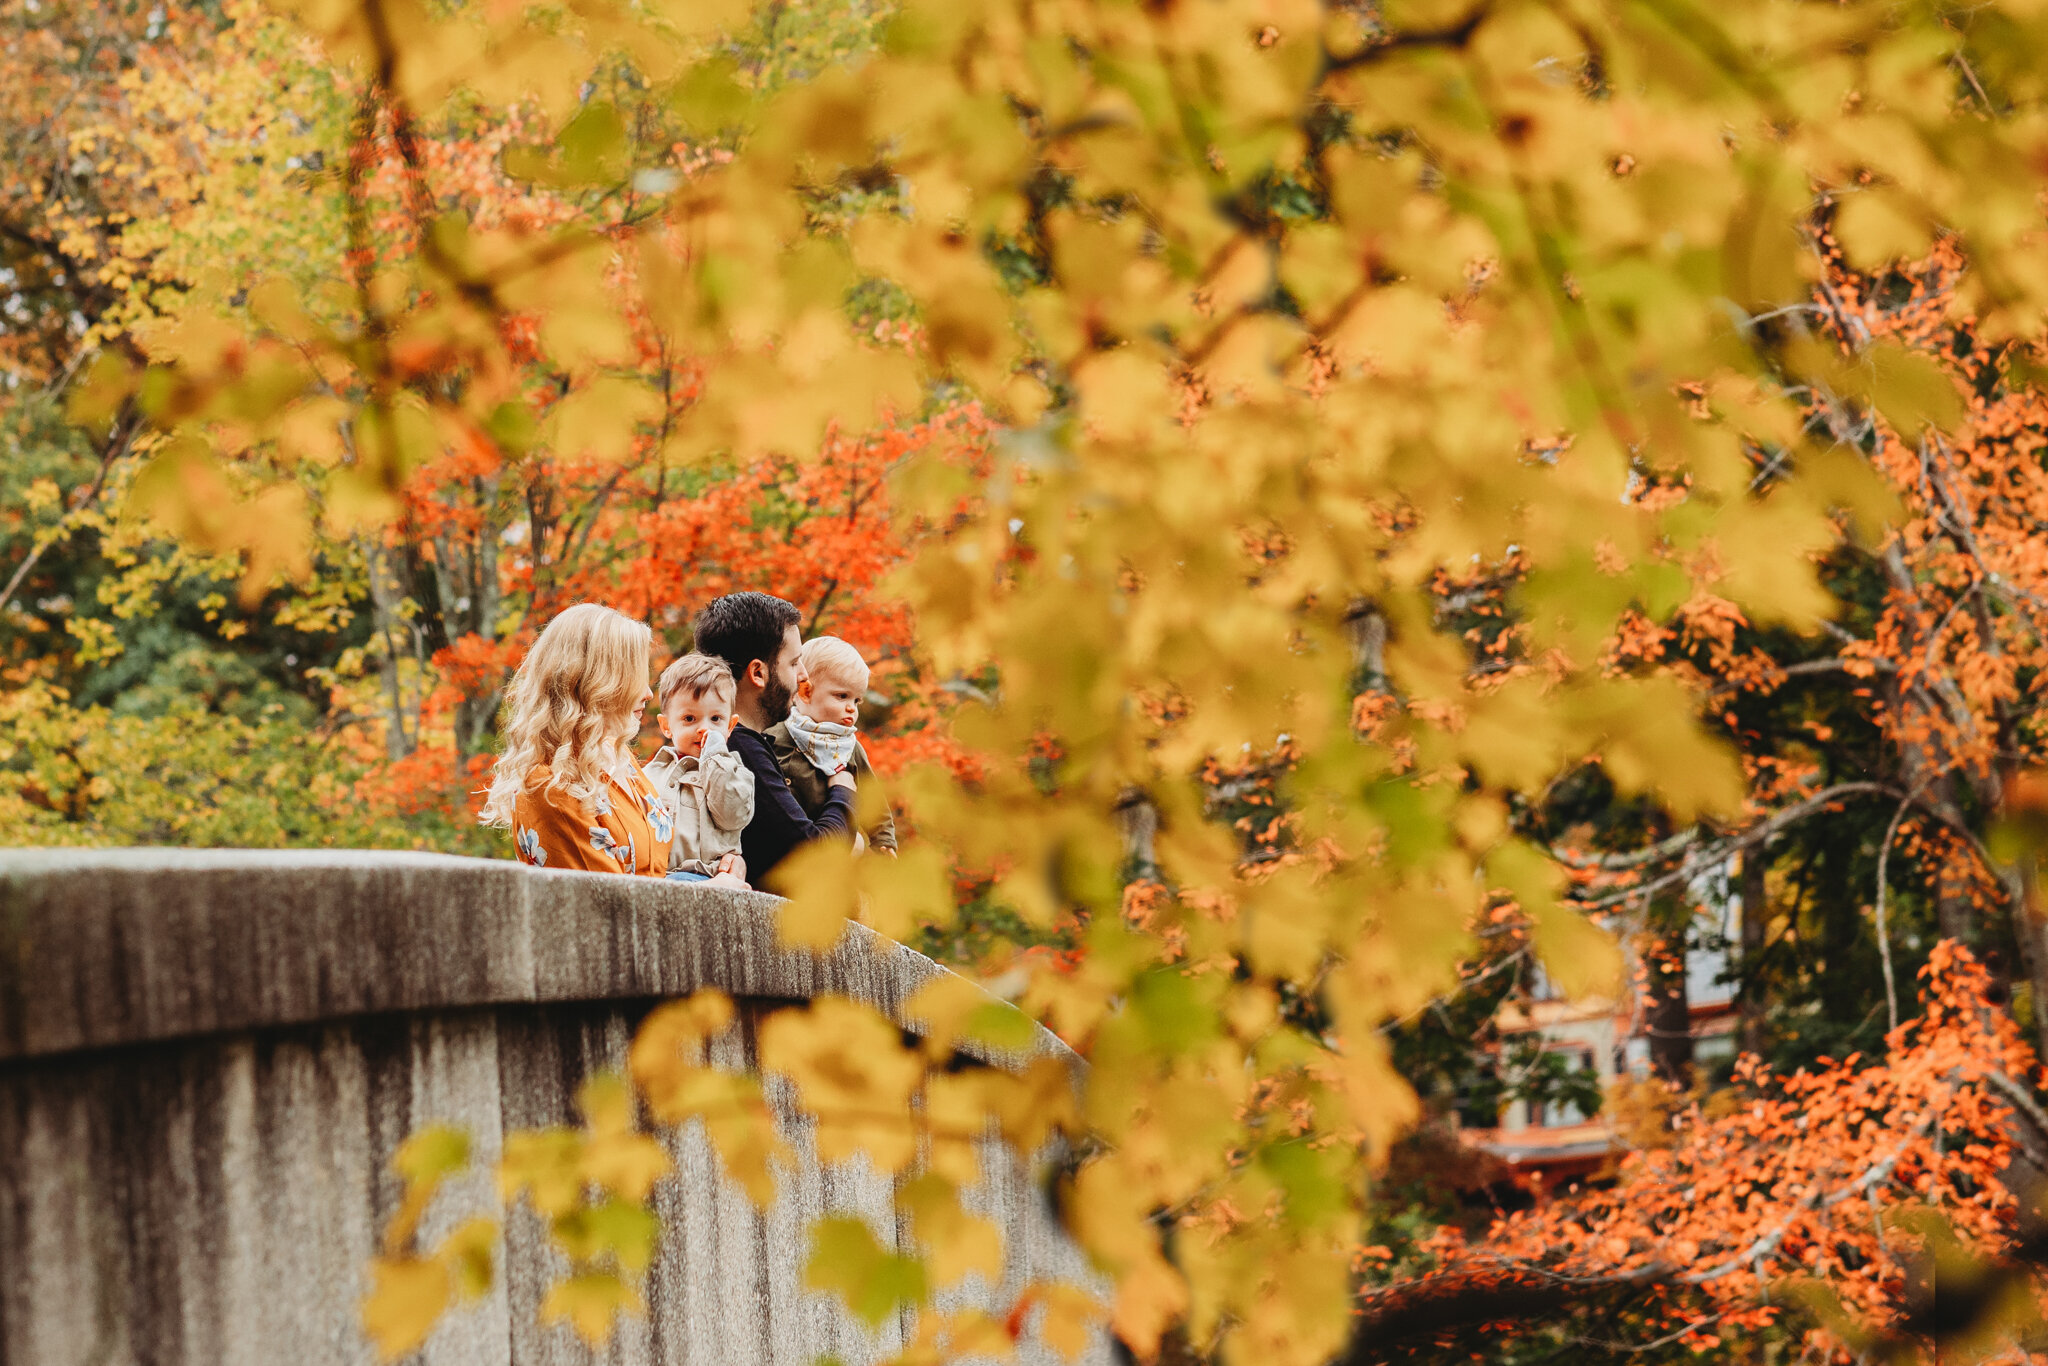 Sudbury family standing on a bridge, framed by bright gold and orange fall foliage. Boston family photographer's secret to getting a coveted fall foliage session during the busiest season of the year.